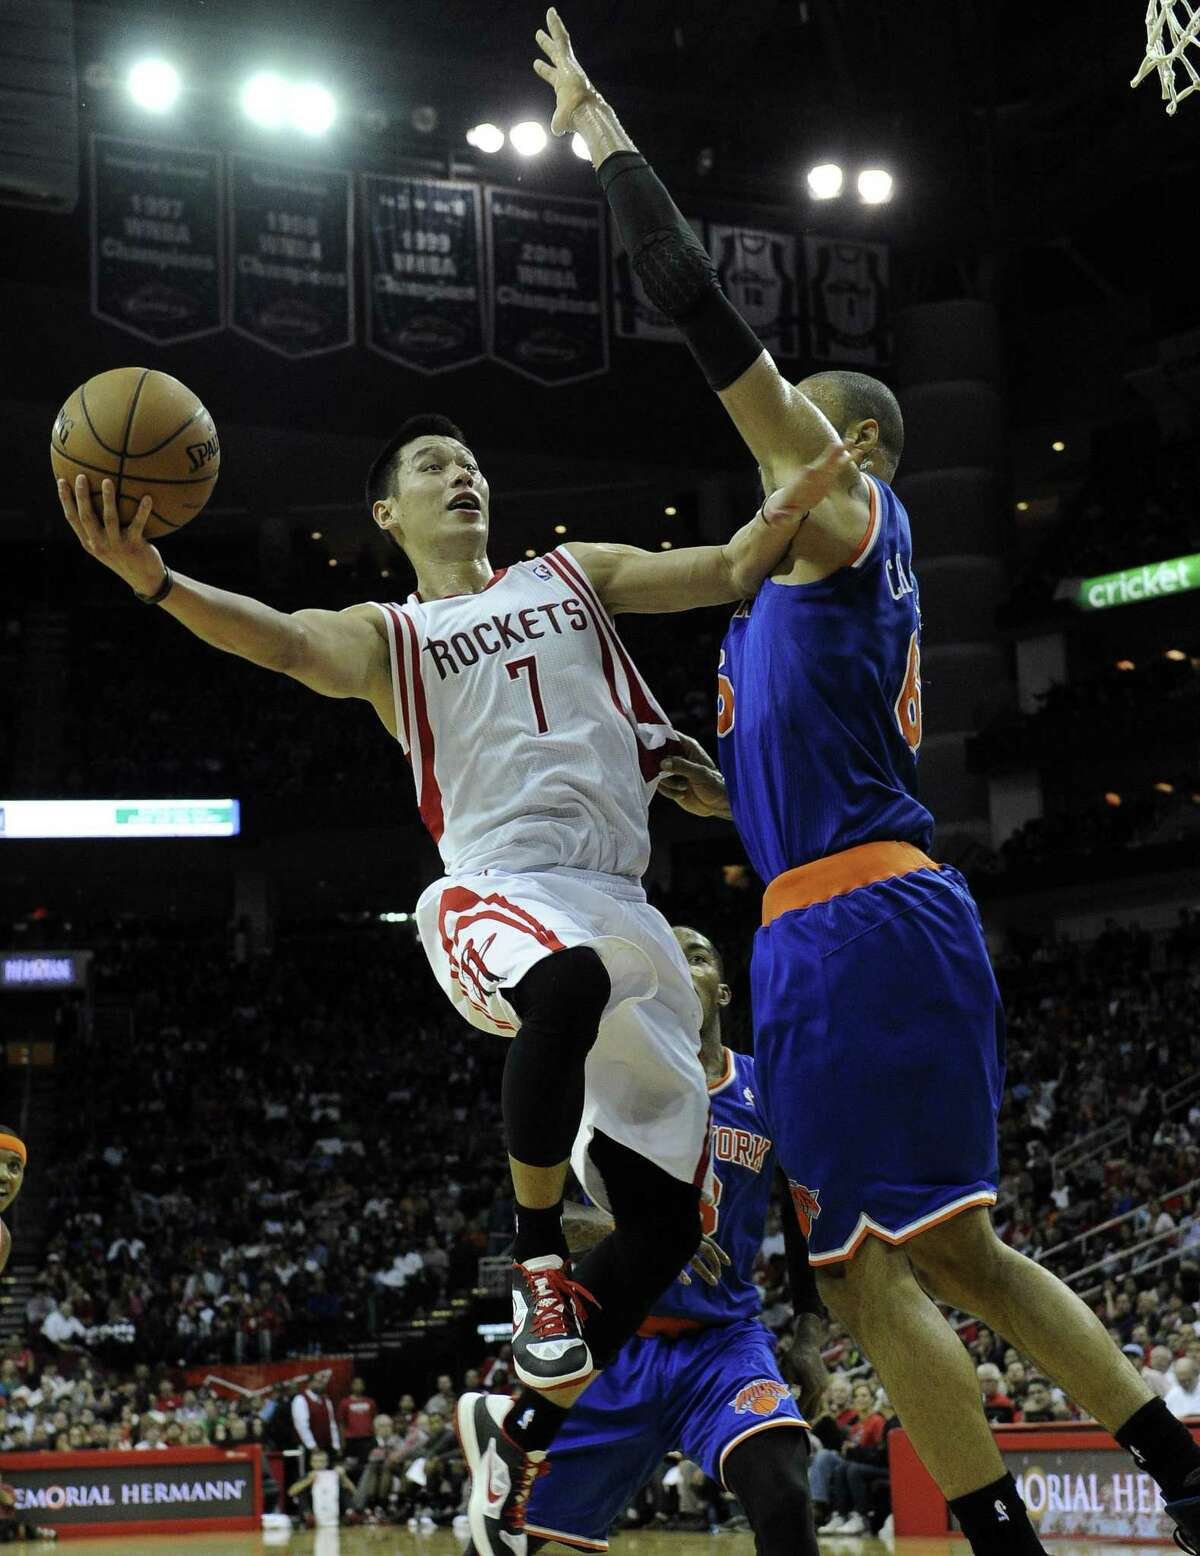 Houston Rockets guard Jeremy Lin attempts a lay-up around New York Knicks center Tyson Chandler. By Associated Press